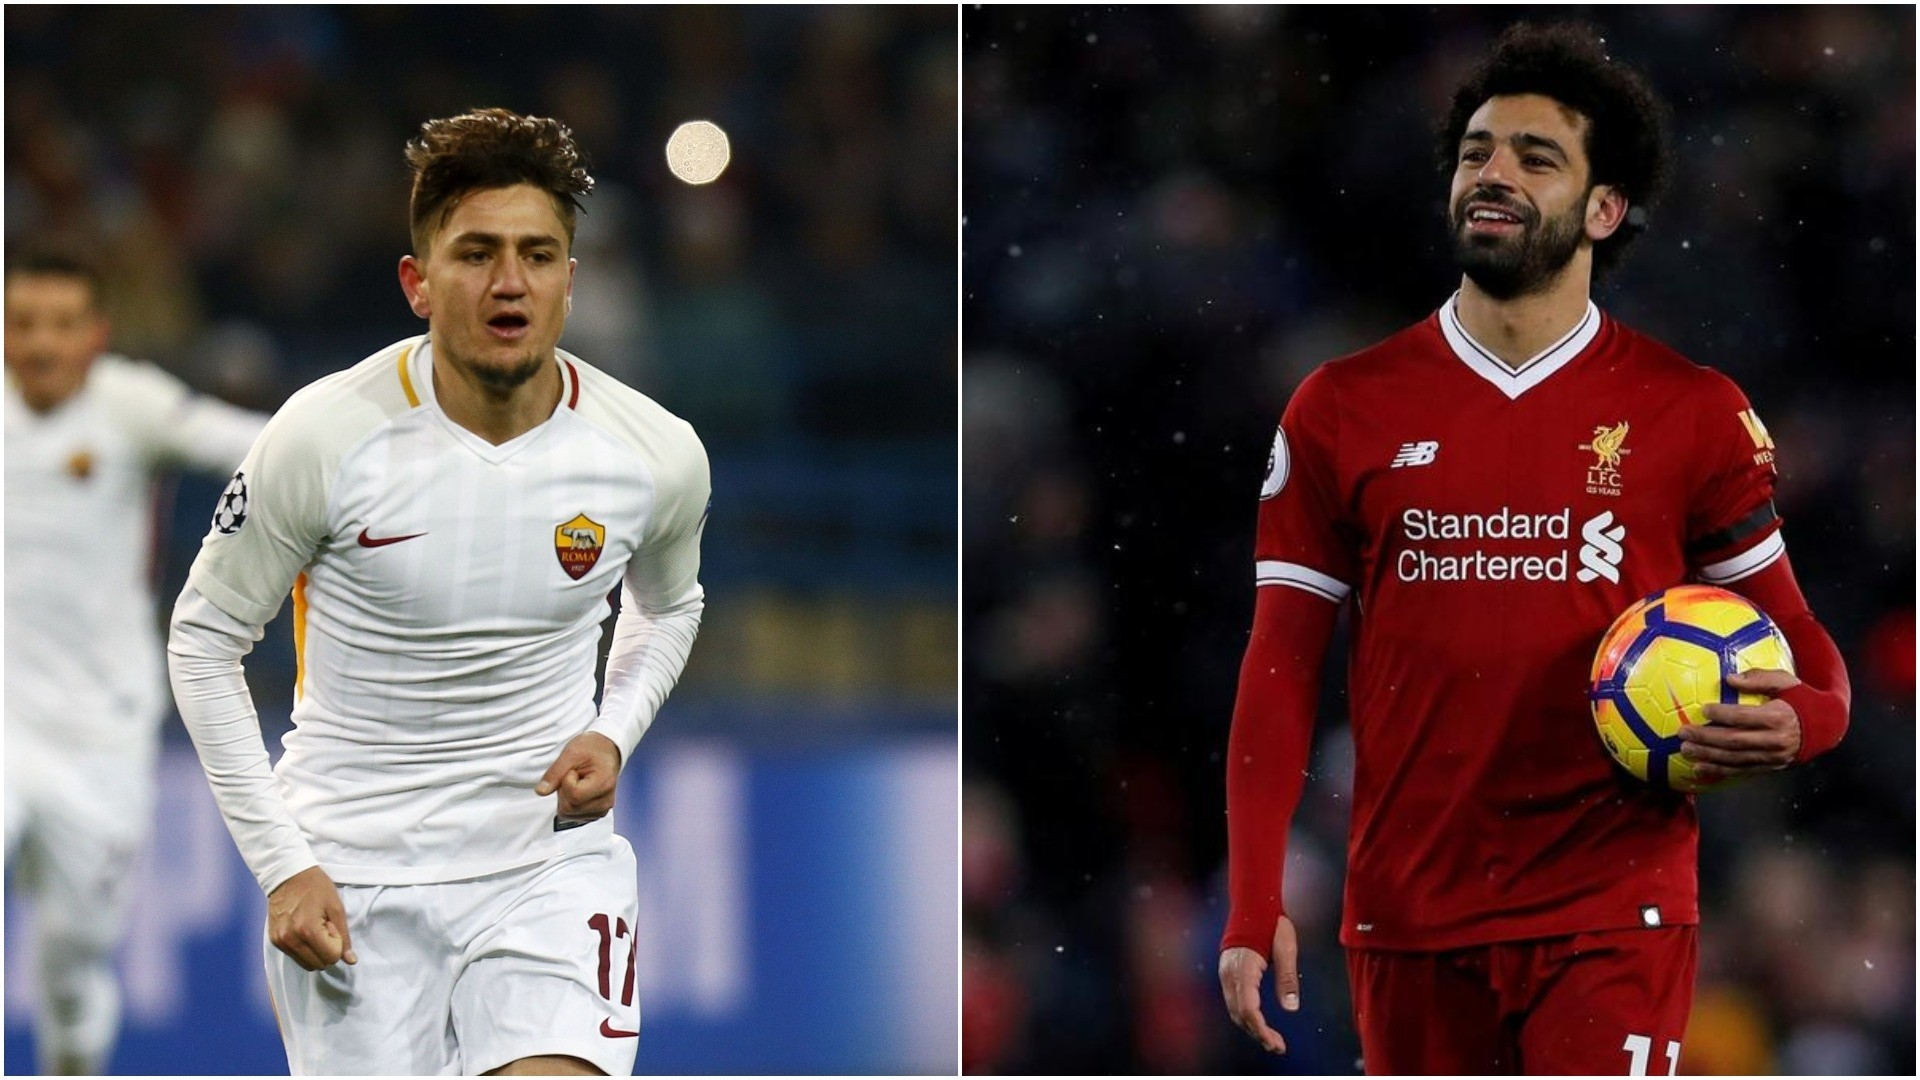 (L) u00dcnder and Salah are seen as two of the favorites of this year's championship. (FILE/REUTERS Photo)